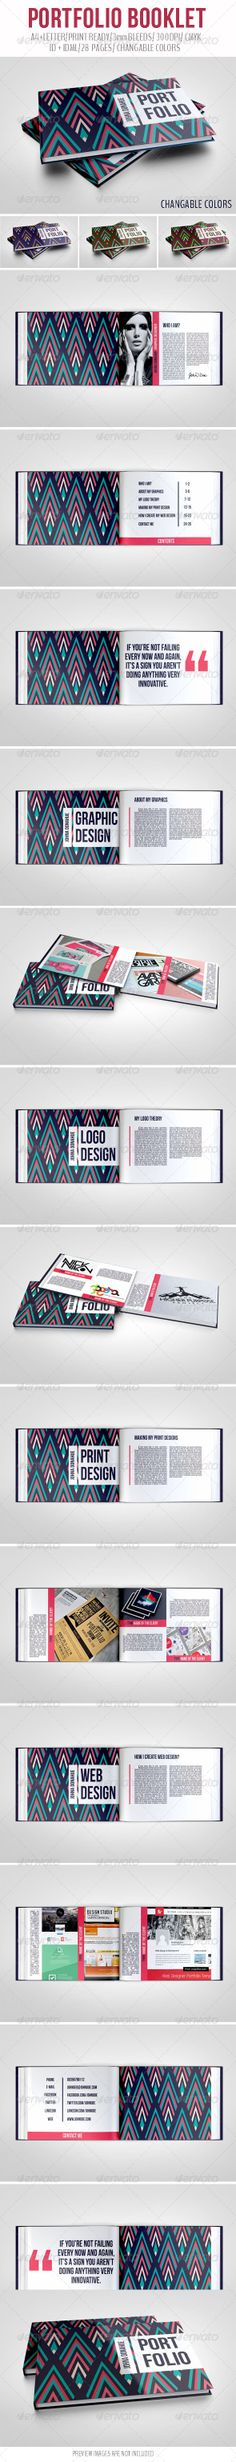 Portfolio Booklet #portfolio #brochure #print #template #abstract #indesign